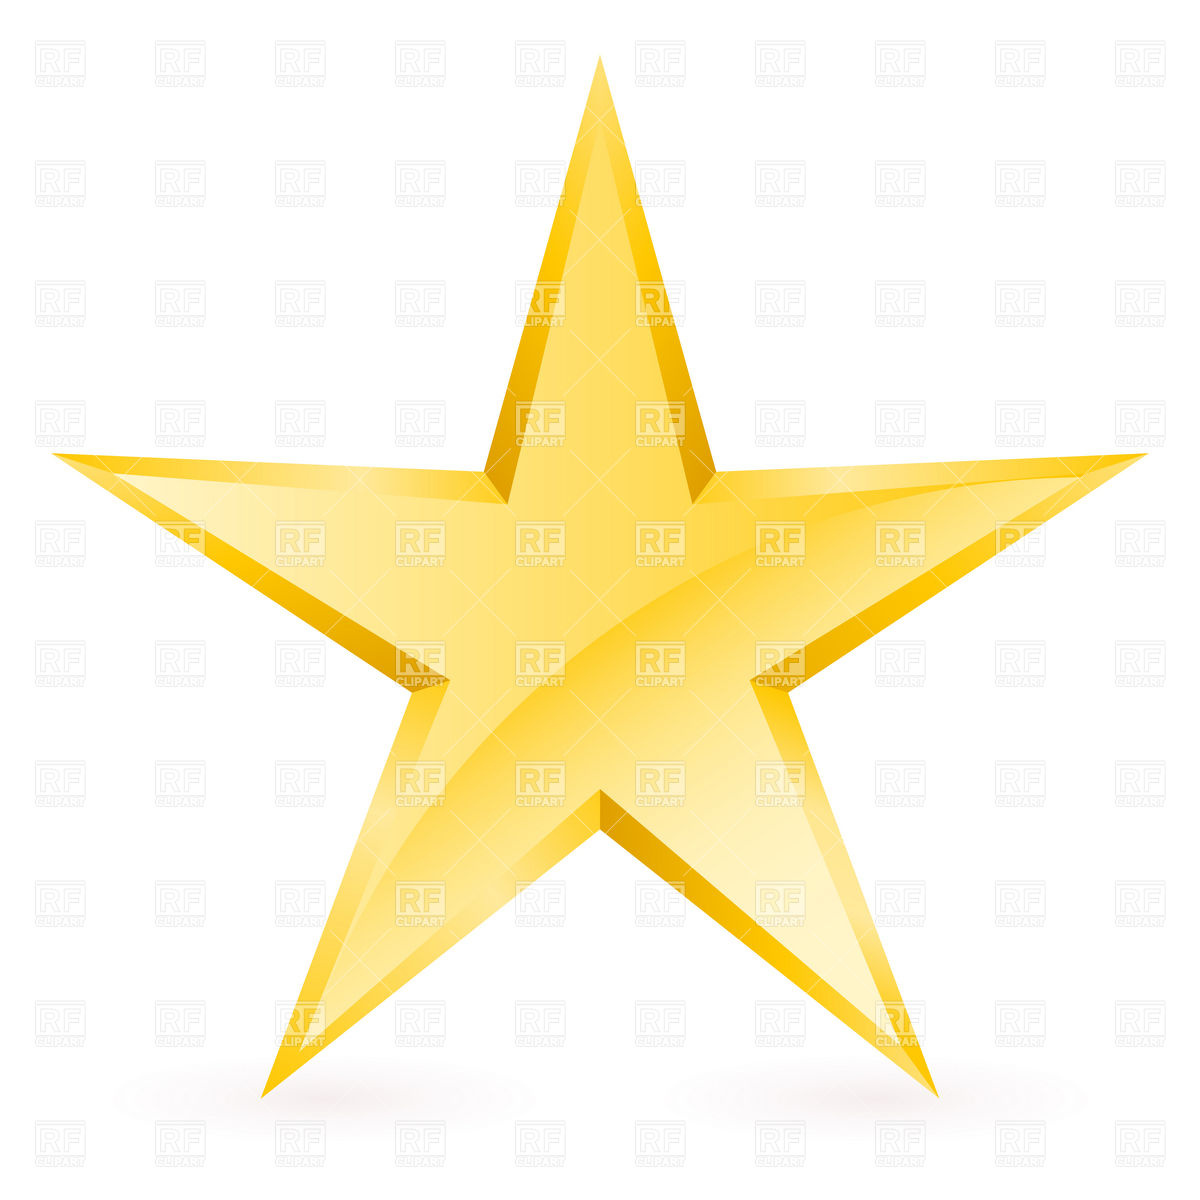 Simple Gold Star 8279 Download Royalty F-Simple Gold Star 8279 Download Royalty Free Vector Clipart Eps-15